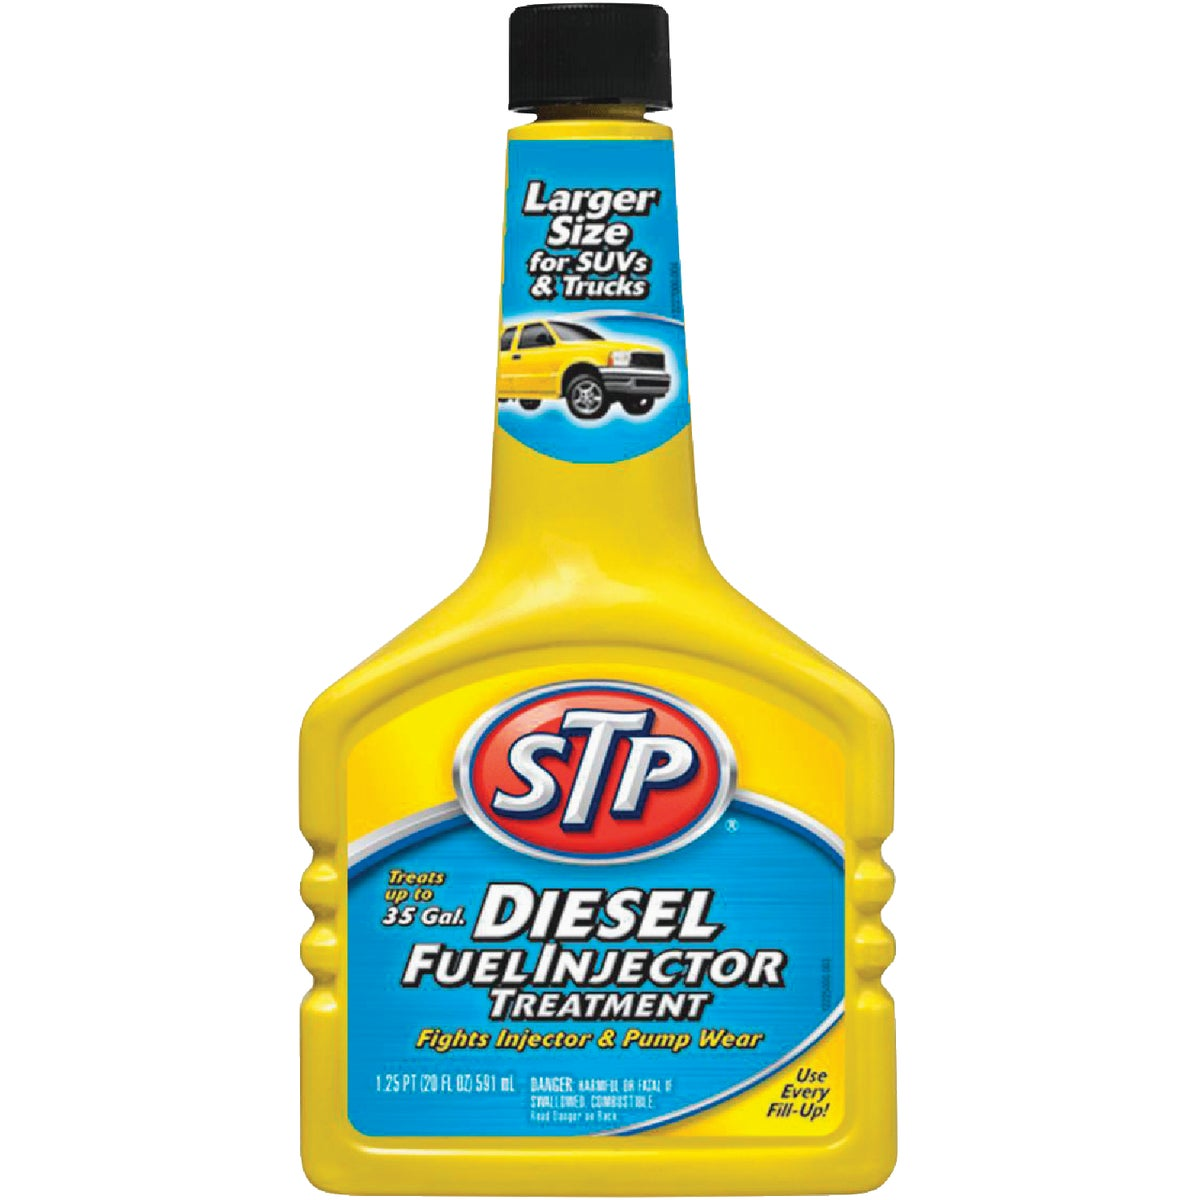 STP DIESEL & INJ CLEANER - 78380 by Armored Autogroup